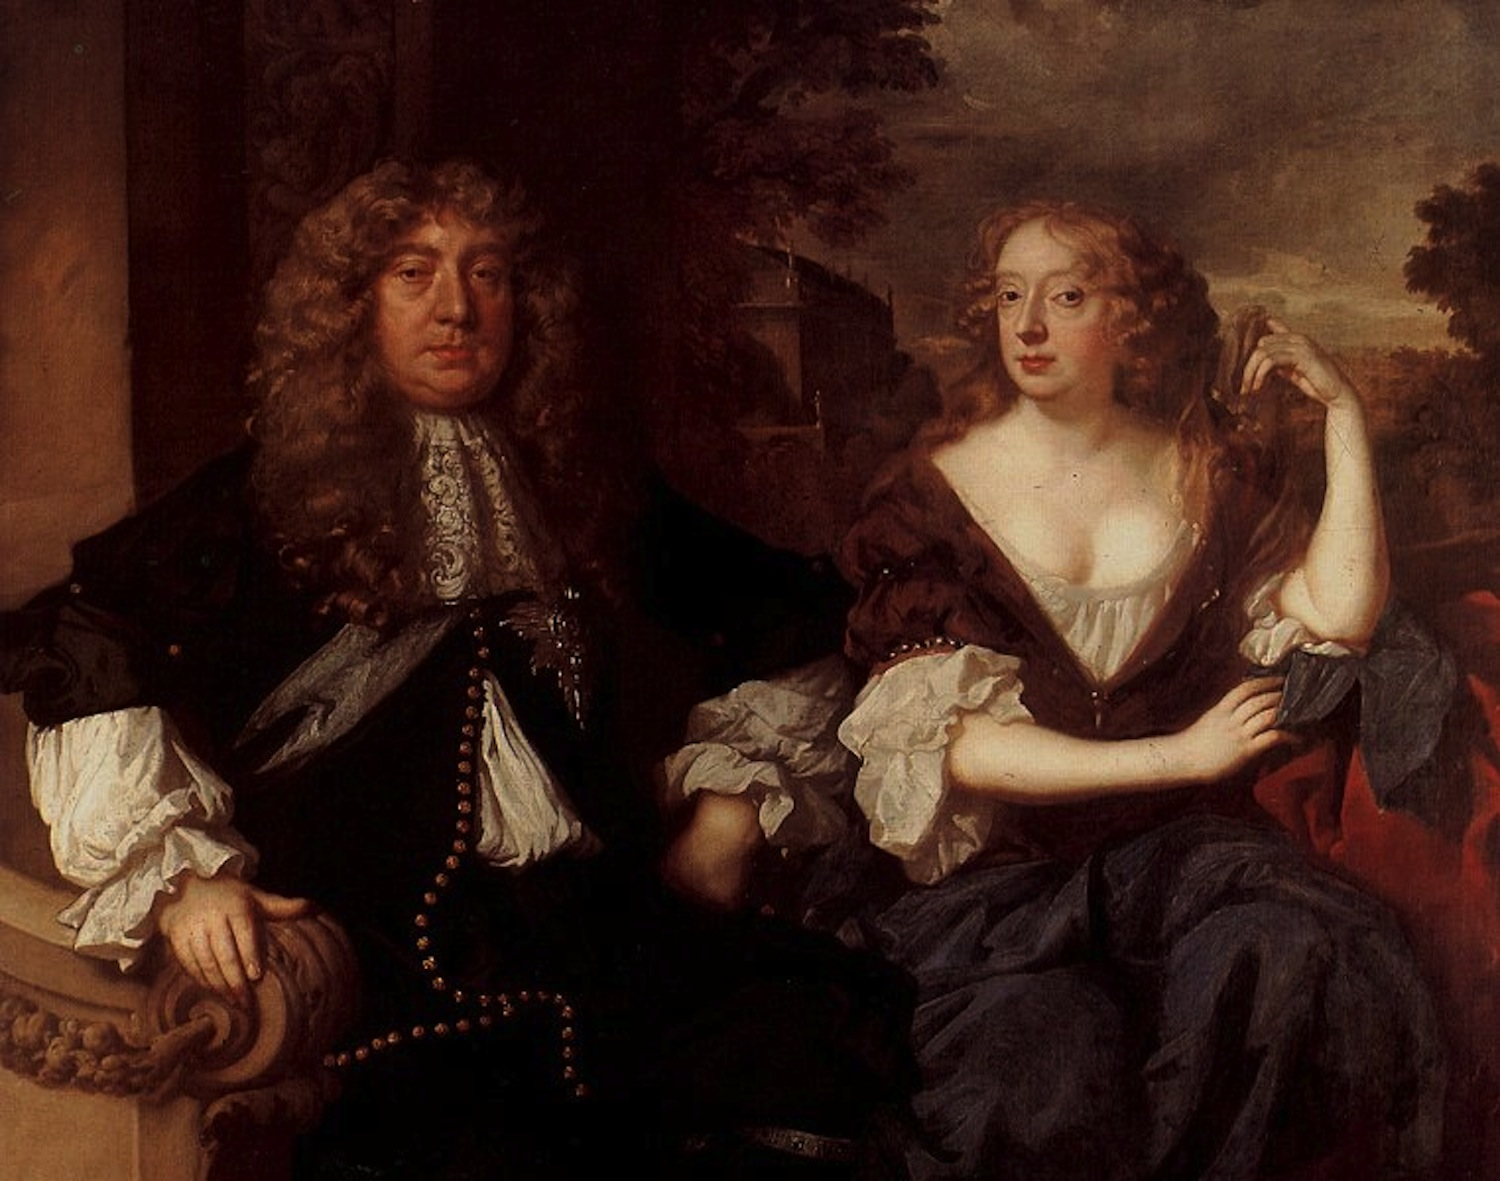 ... gone north to marry again to the Earl of Lauderdale and she wears a  casual-looking dress with a vee neckline over a scoop neck chemise in this  1679 Lely ...